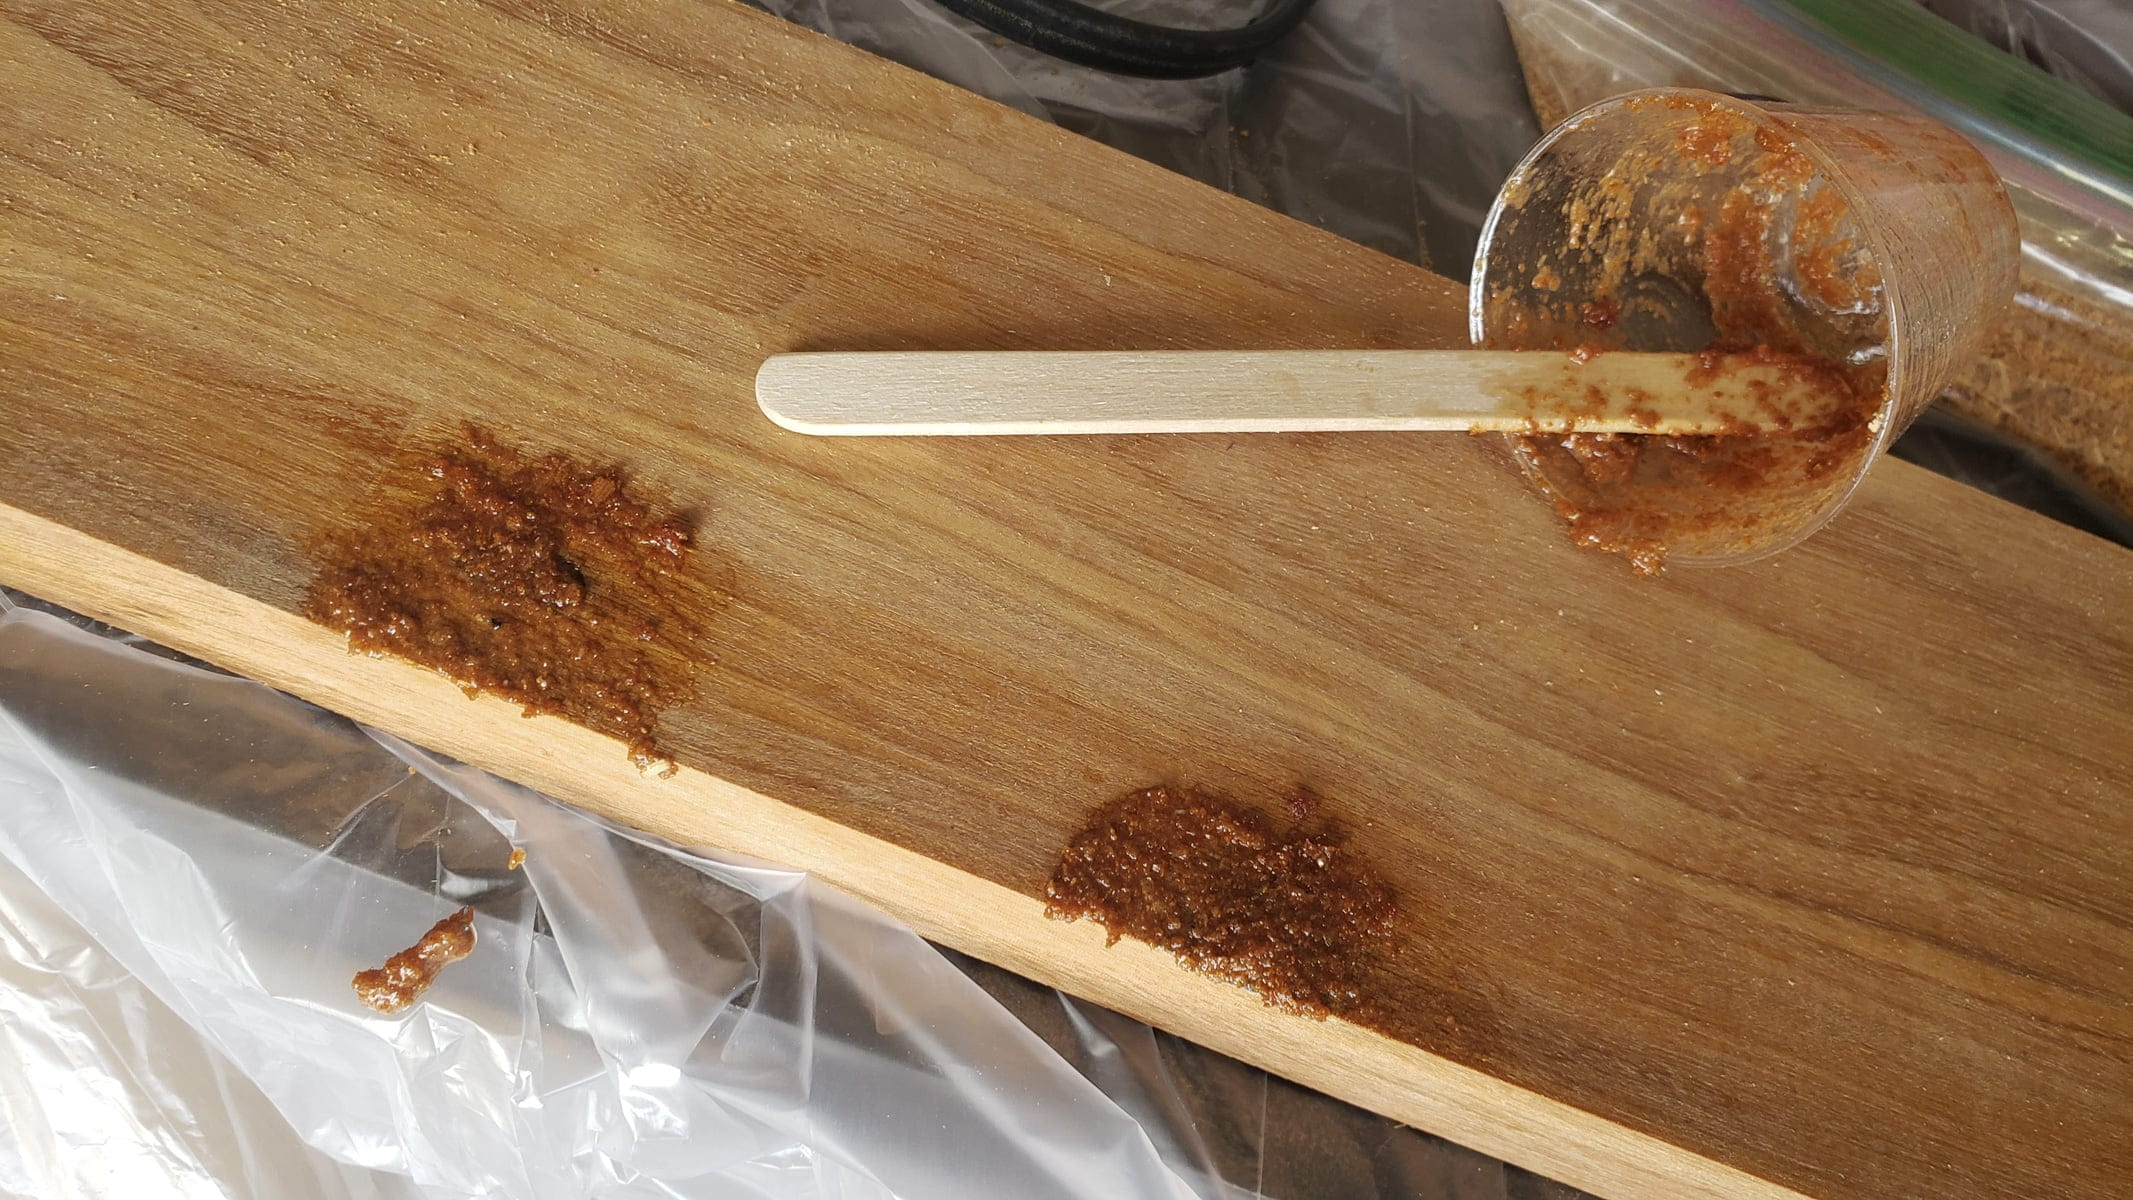 An orange-colored piece of wood is flat on a table. Small sections have a slightly darker colored, thick paste on the surface. A small cup, a craft stick, and more of the dark epoxy are seen nearby.